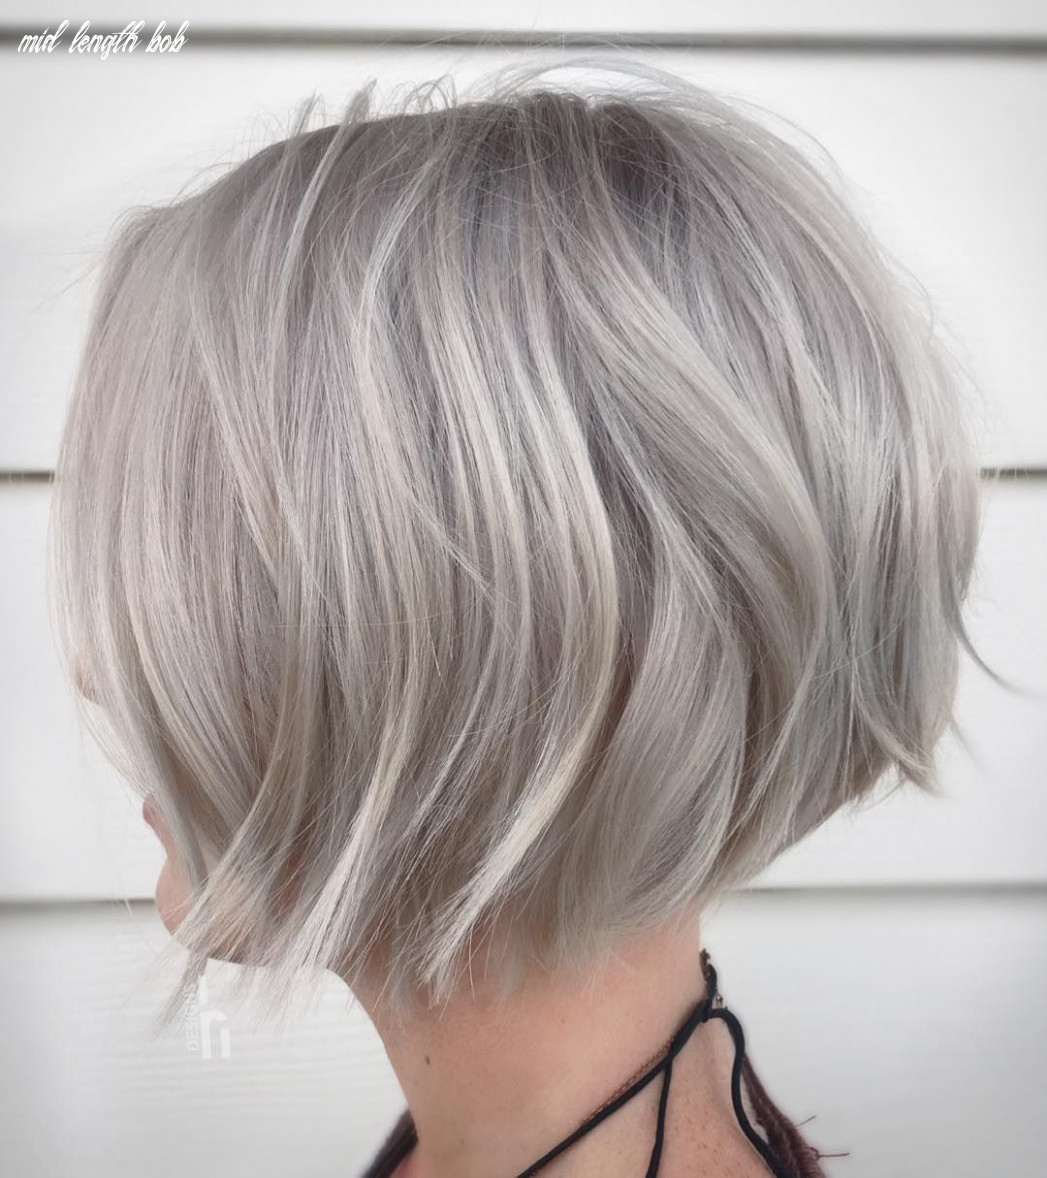 11 stylish medium bob haircuts for women easy care chic bob hair